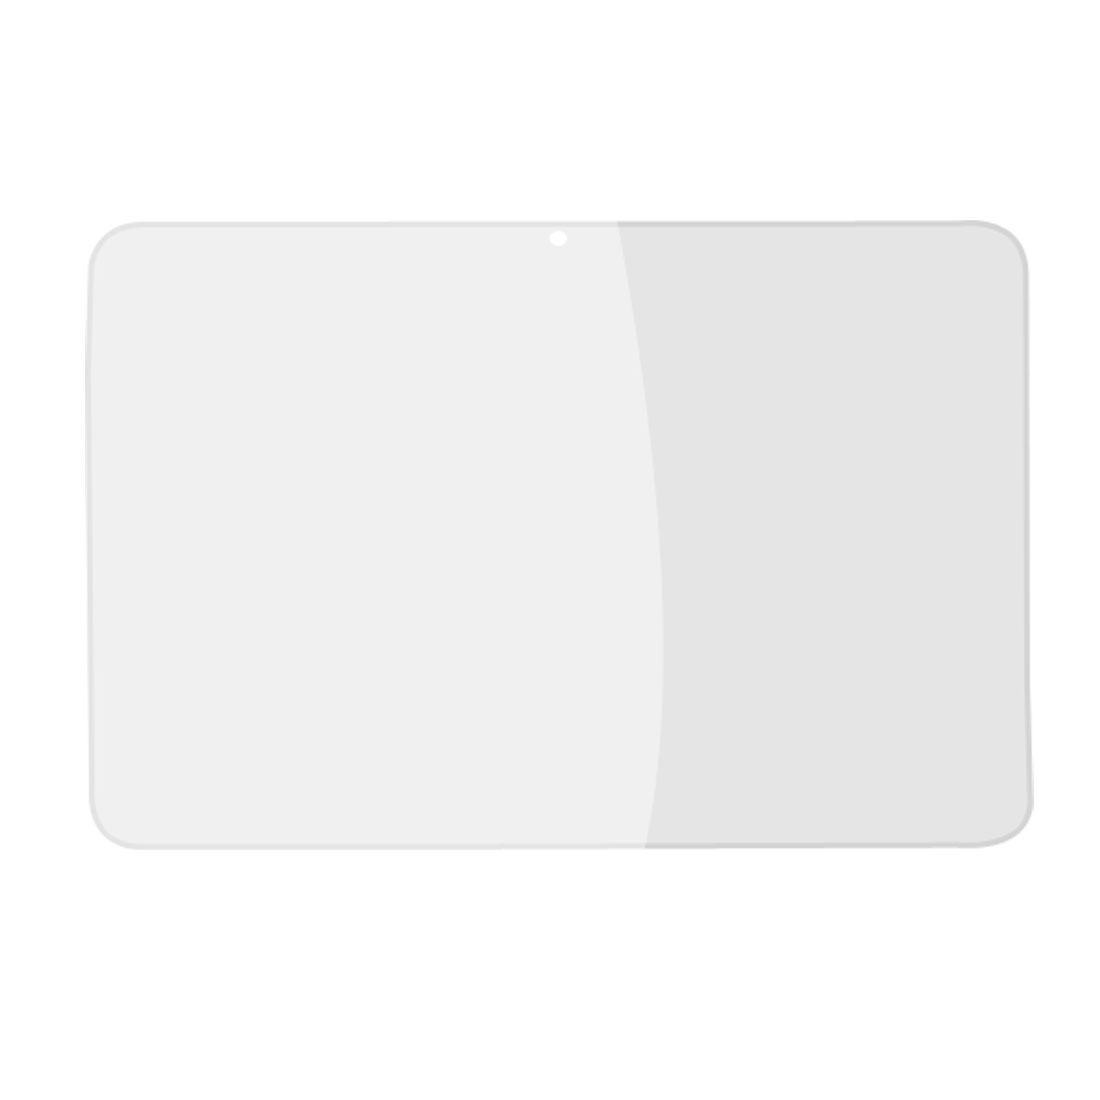 LCD Screen Guard Film Cover Clear for Motorola XOOM